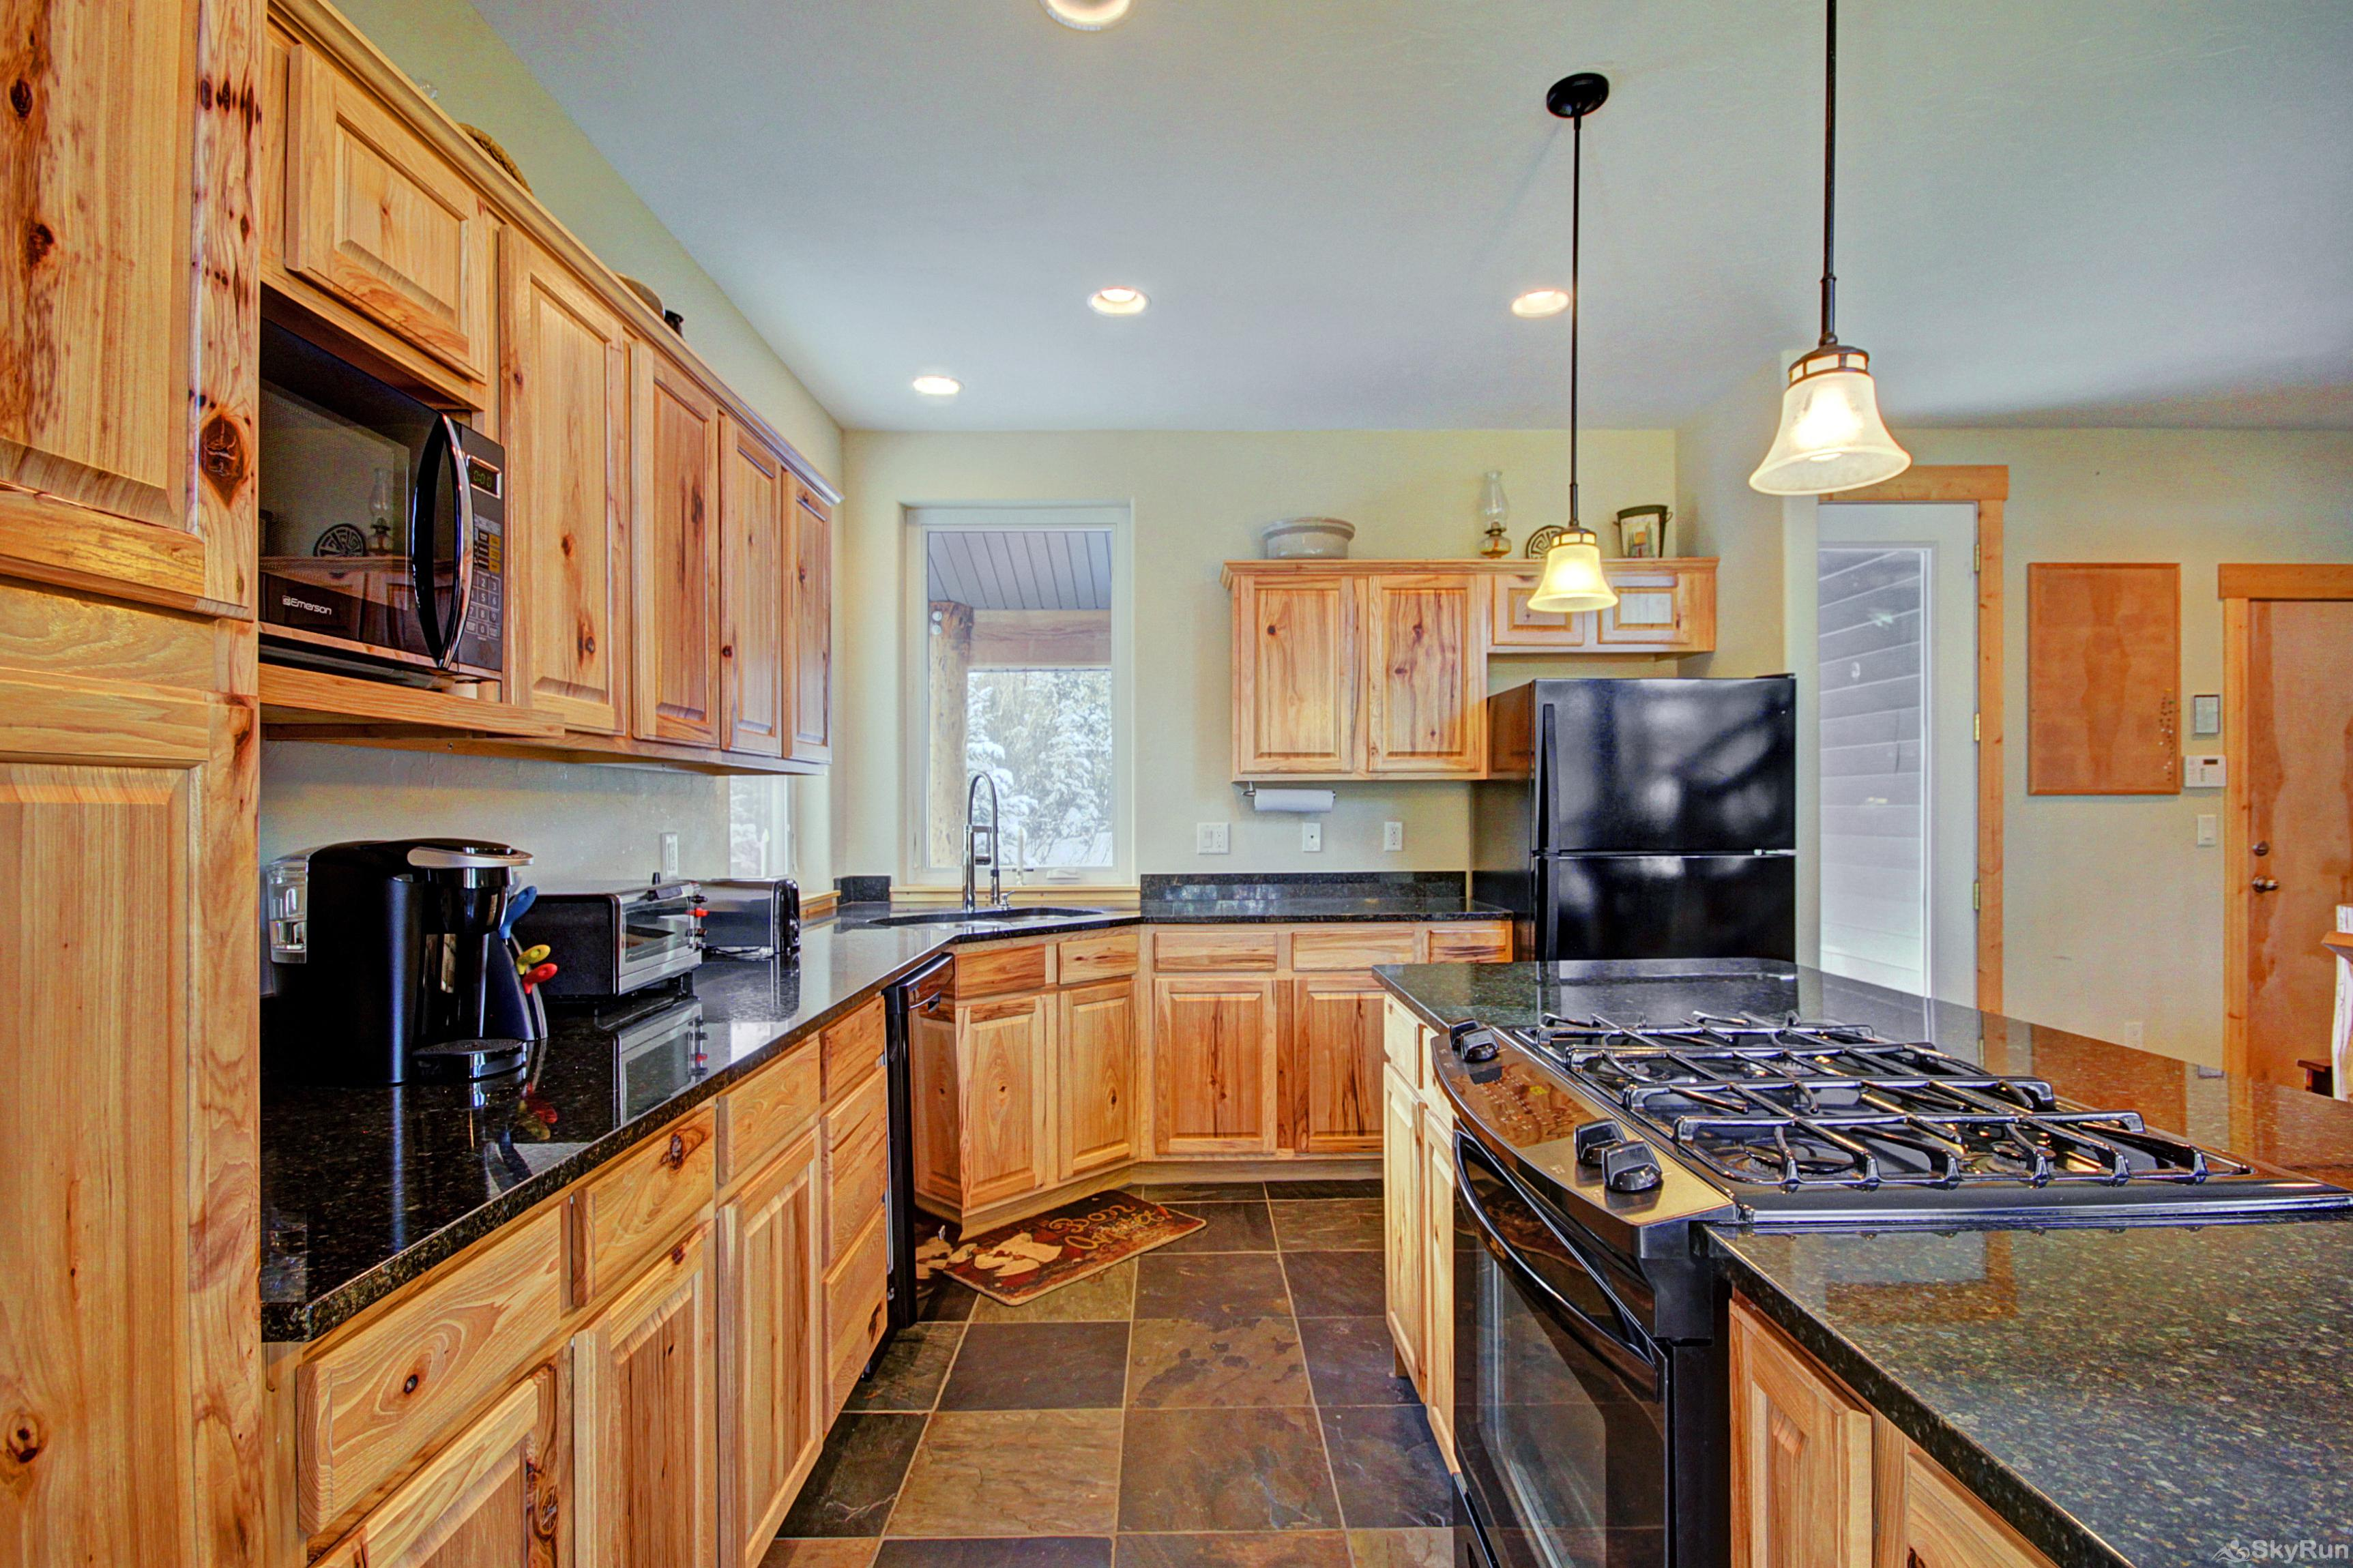 Twin Creek Lodge Large fully equipped kitchen with full size fridge and dishwasher